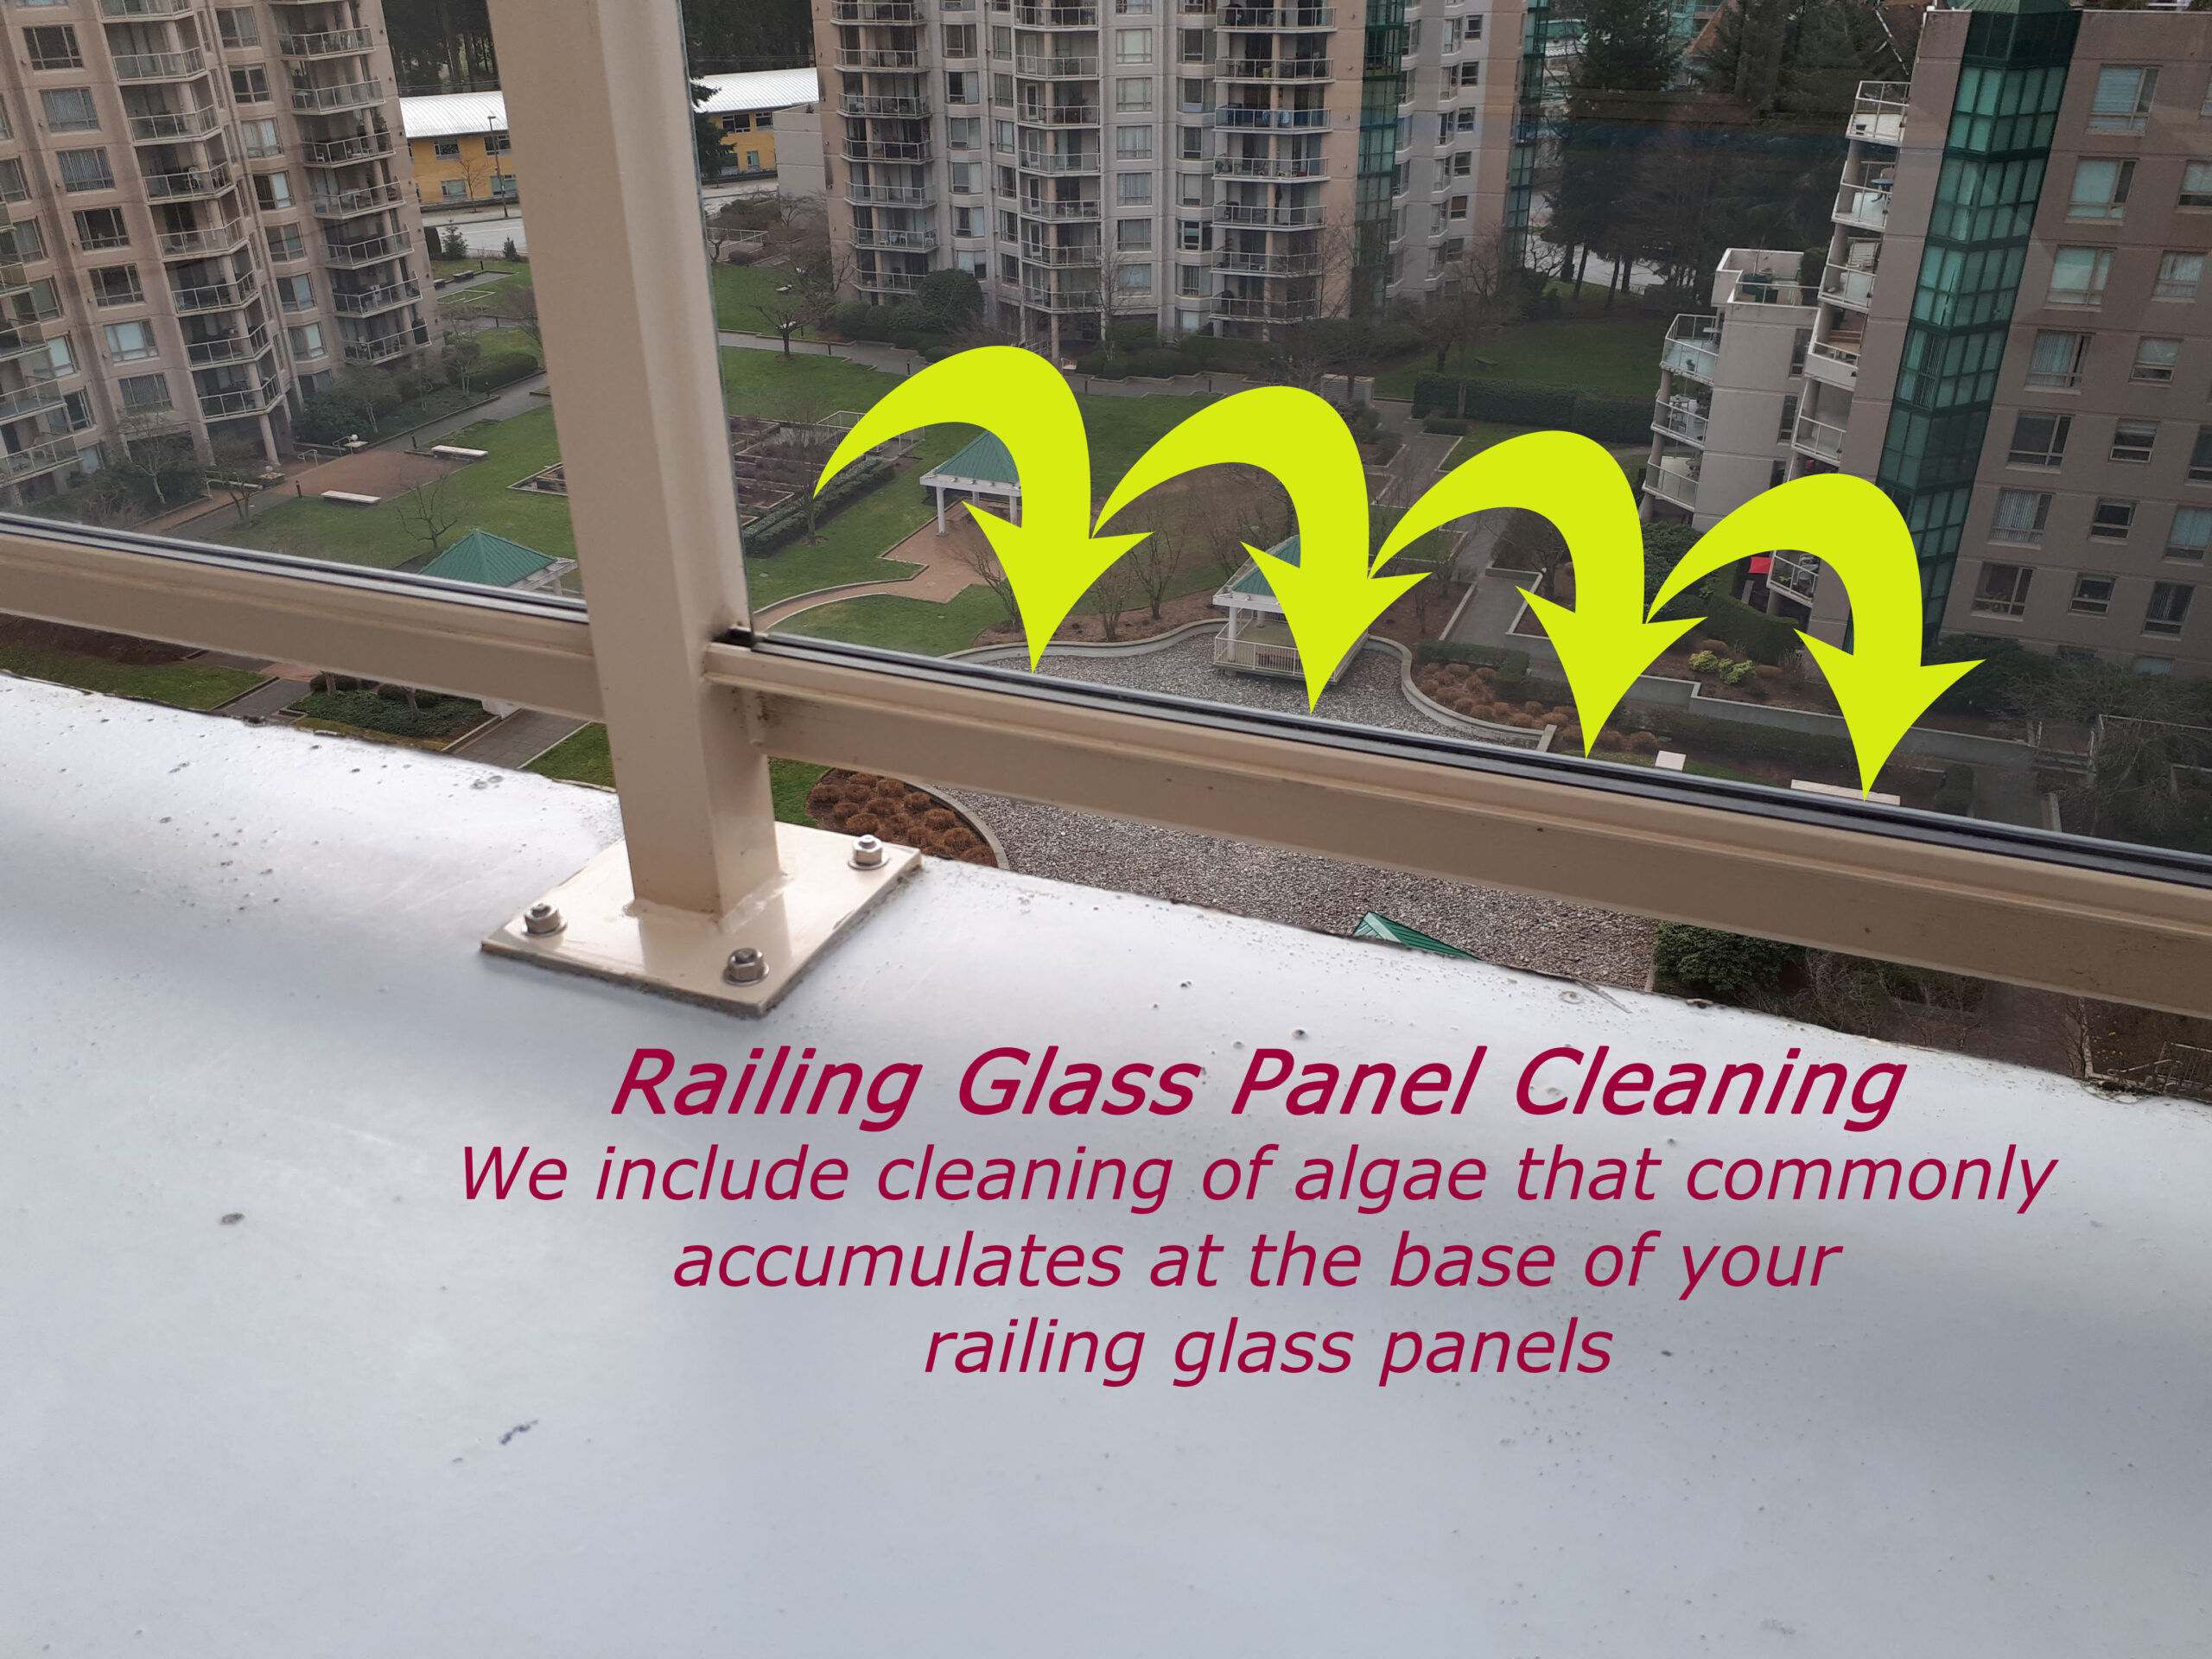 How to clean balcony railing glass panels near you in vancouver